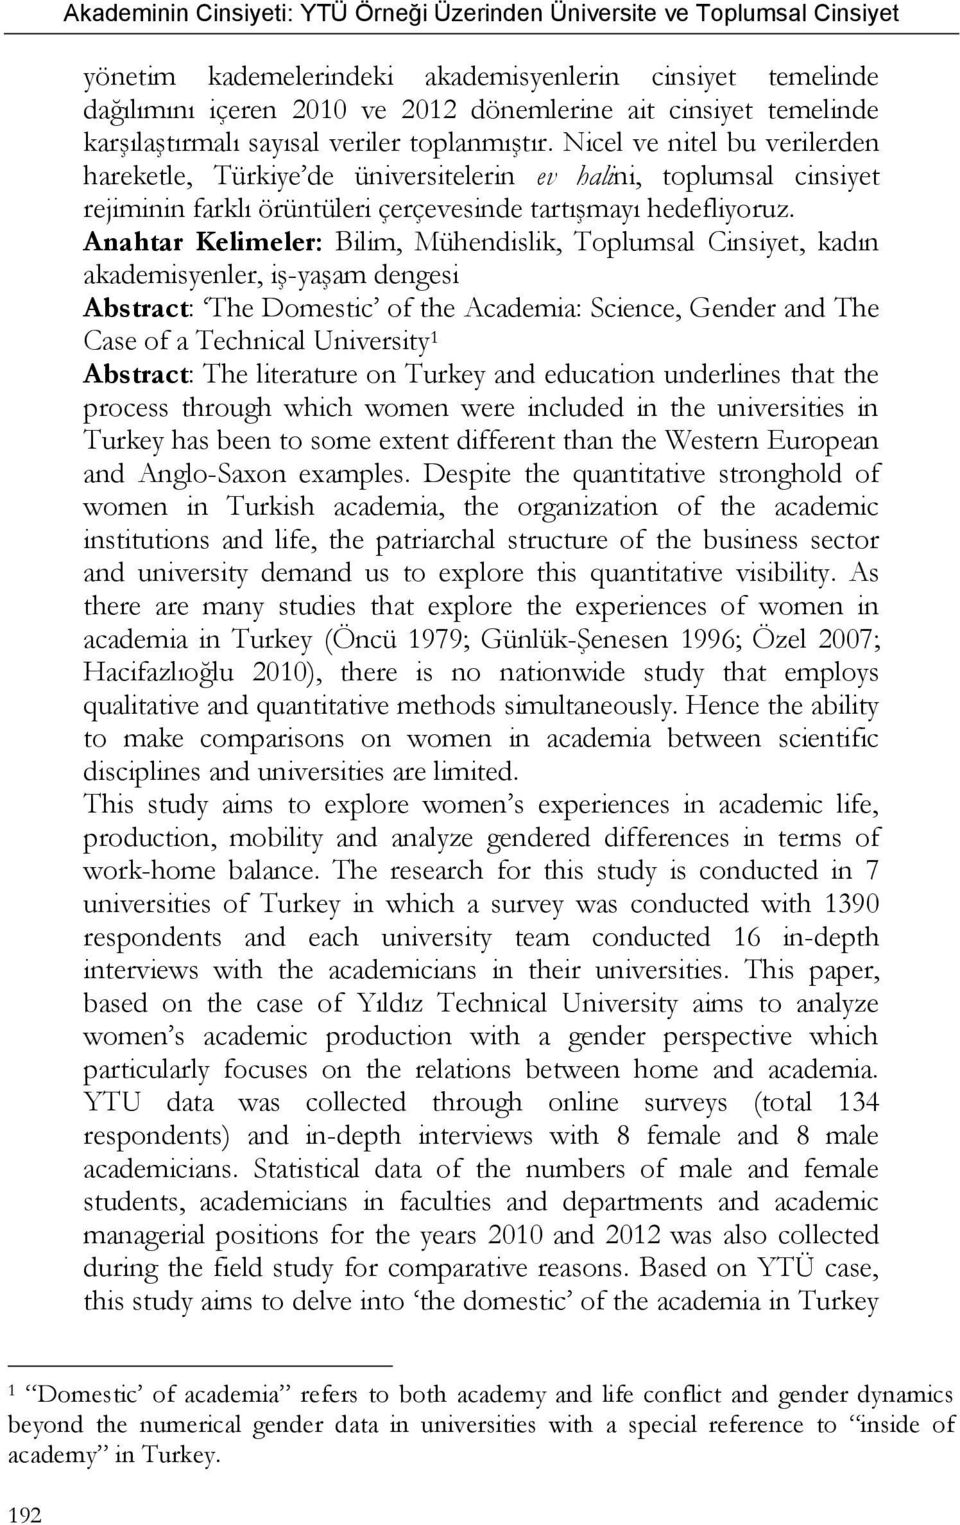 Anahtar Kelimeler: Bilim, Mühendislik, Toplumsal Cinsiyet, kadın akademisyenler, iş-yaşam dengesi Abstract: The Domestic of the Academia: Science, Gender and The Case of a Technical University 1